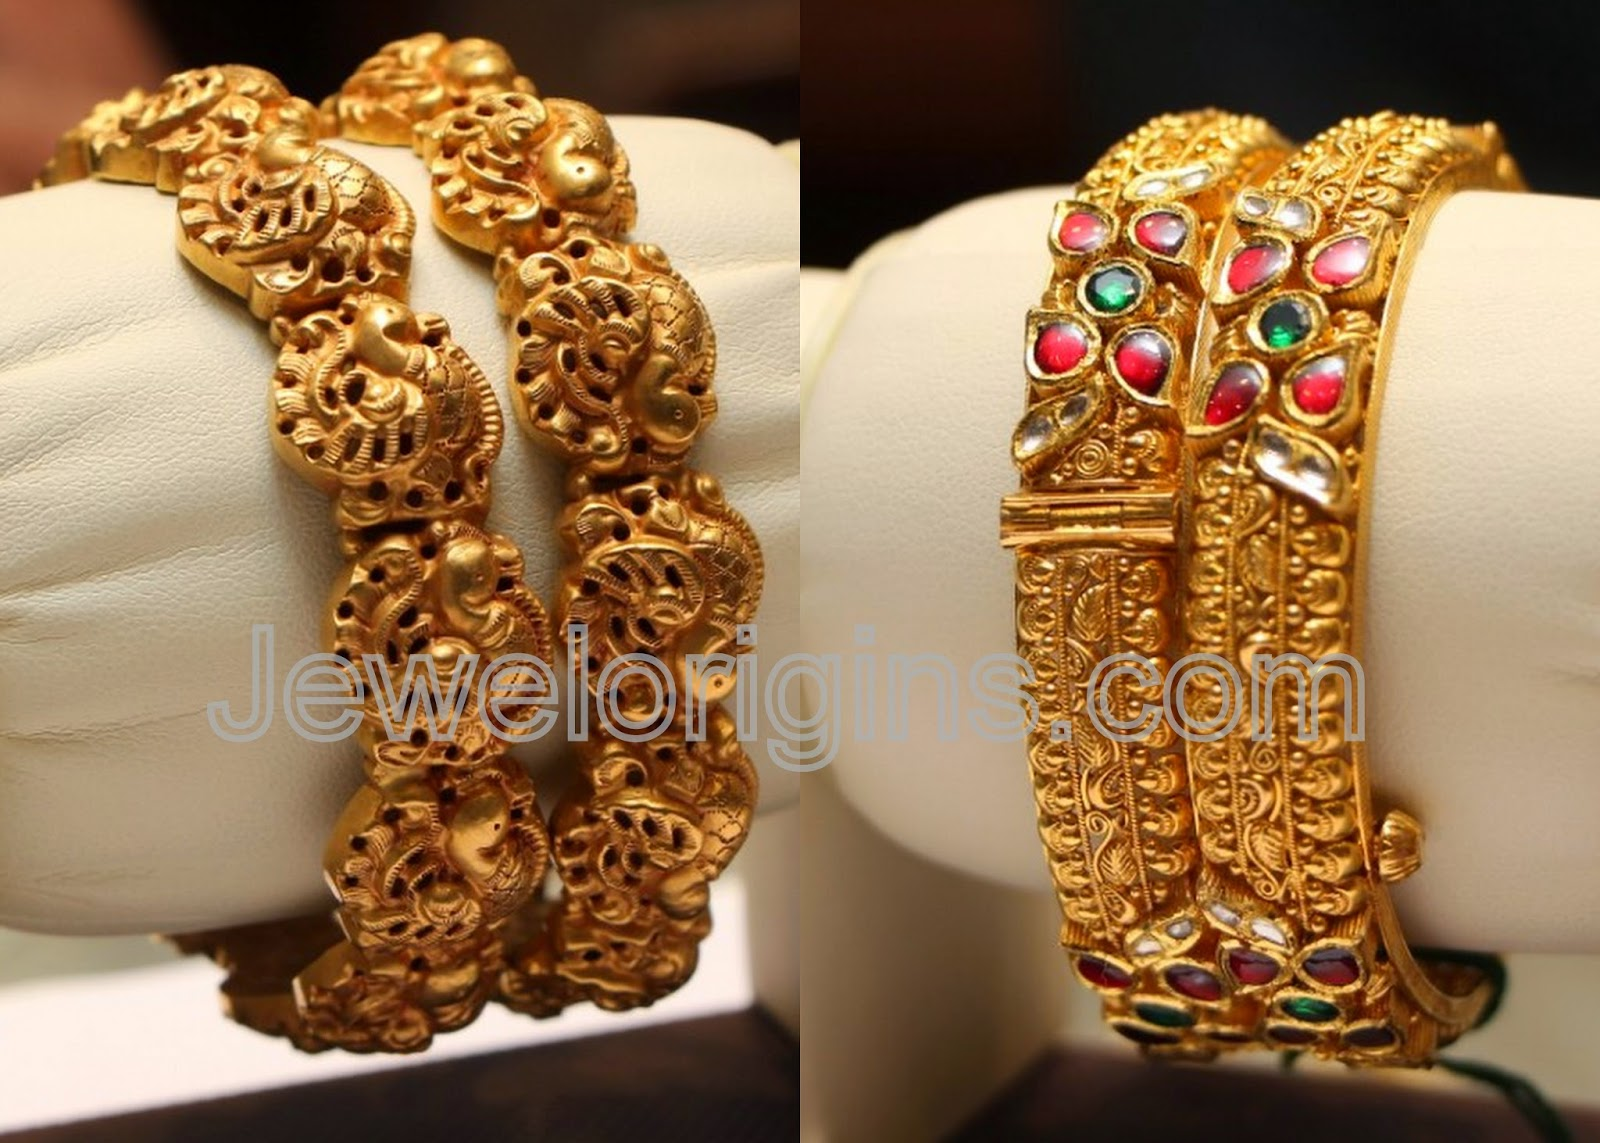 jewelorigins.com-Indian Designer Gold and Diamond ...